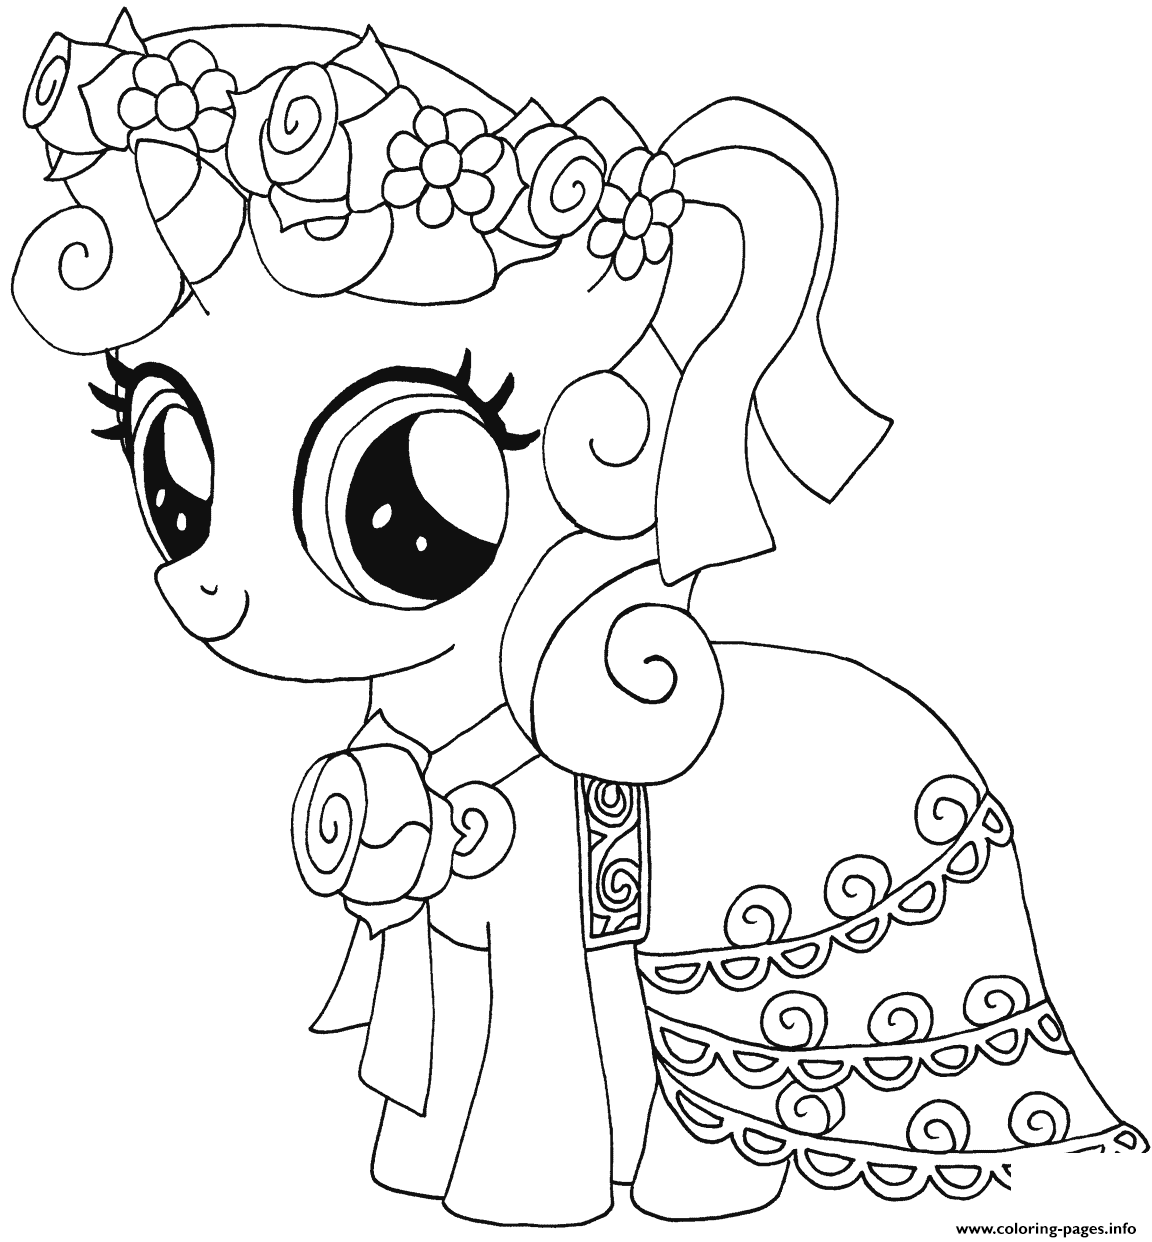 my little pony coloring sheets to print december 2012 team colors coloring print pony little sheets to my